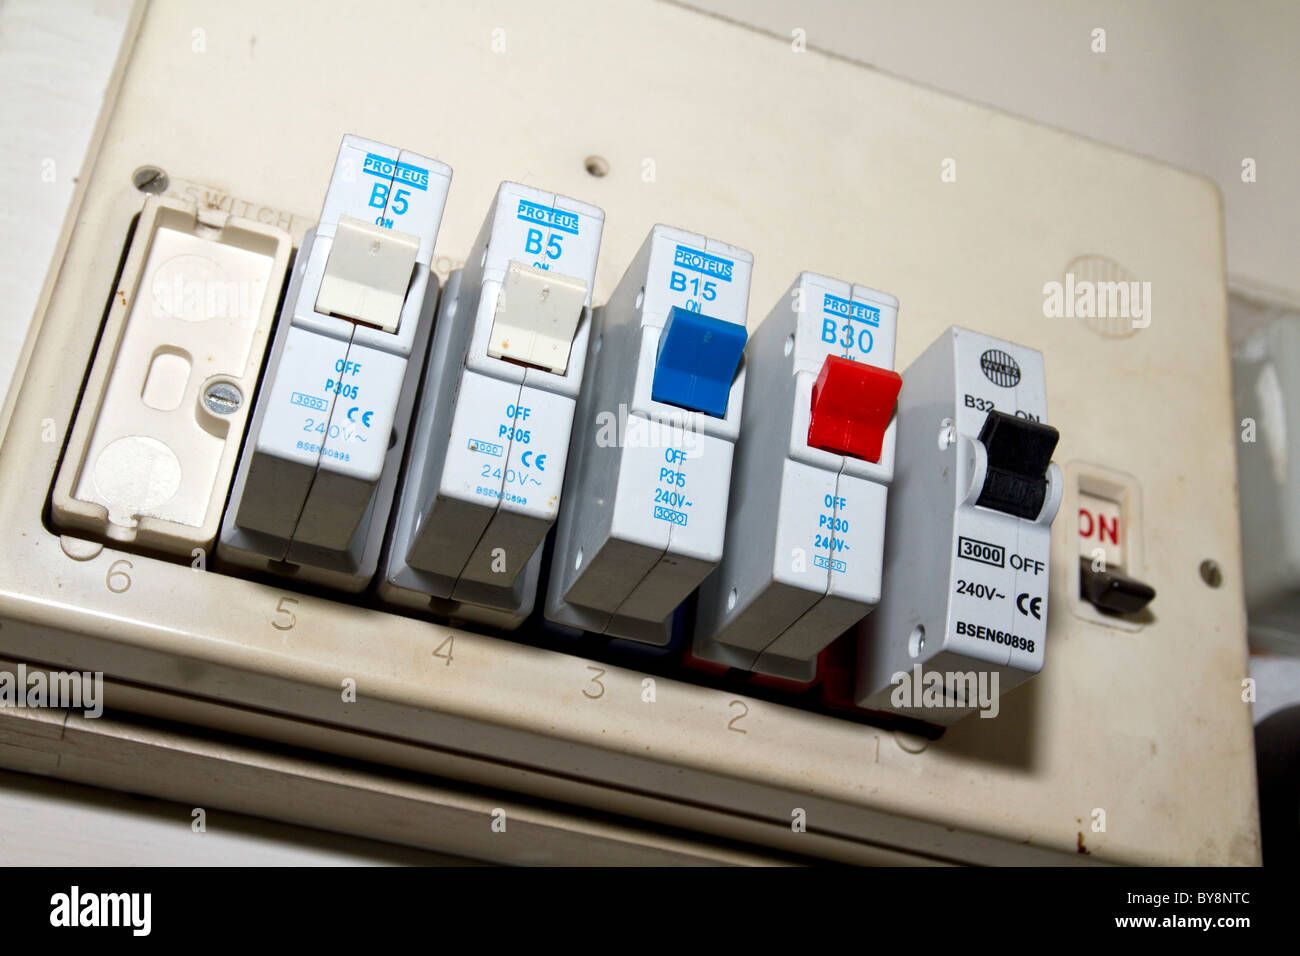 uk old electric fuse box in a london house BY8NTC uk old electric fuse box in a london house stock photo, royalty fuse box cover at mifinder.co